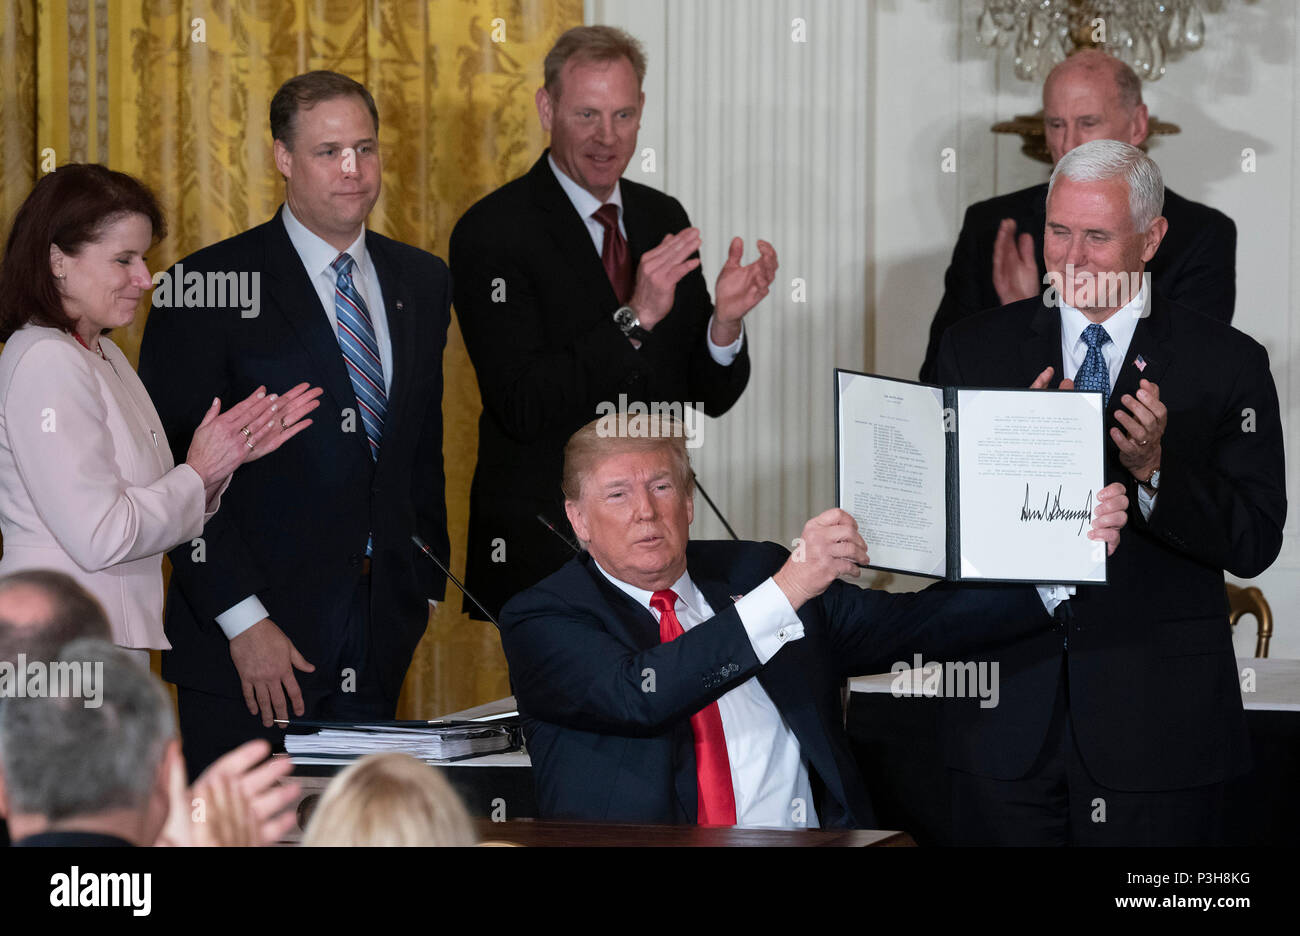 United States President Donald J. Trump displays Space Policy Directive 3, signed during a meeting of the National Space Council at The White House in Washington, DC, June 18, 2018. The directive addresses issues including monitoring of objects in orbit, providing that information to spacecraft operators to avoid collisions, and to limit the growth of orbital debris. Chris Kleponis/CNP /MediaPunch - Stock Image